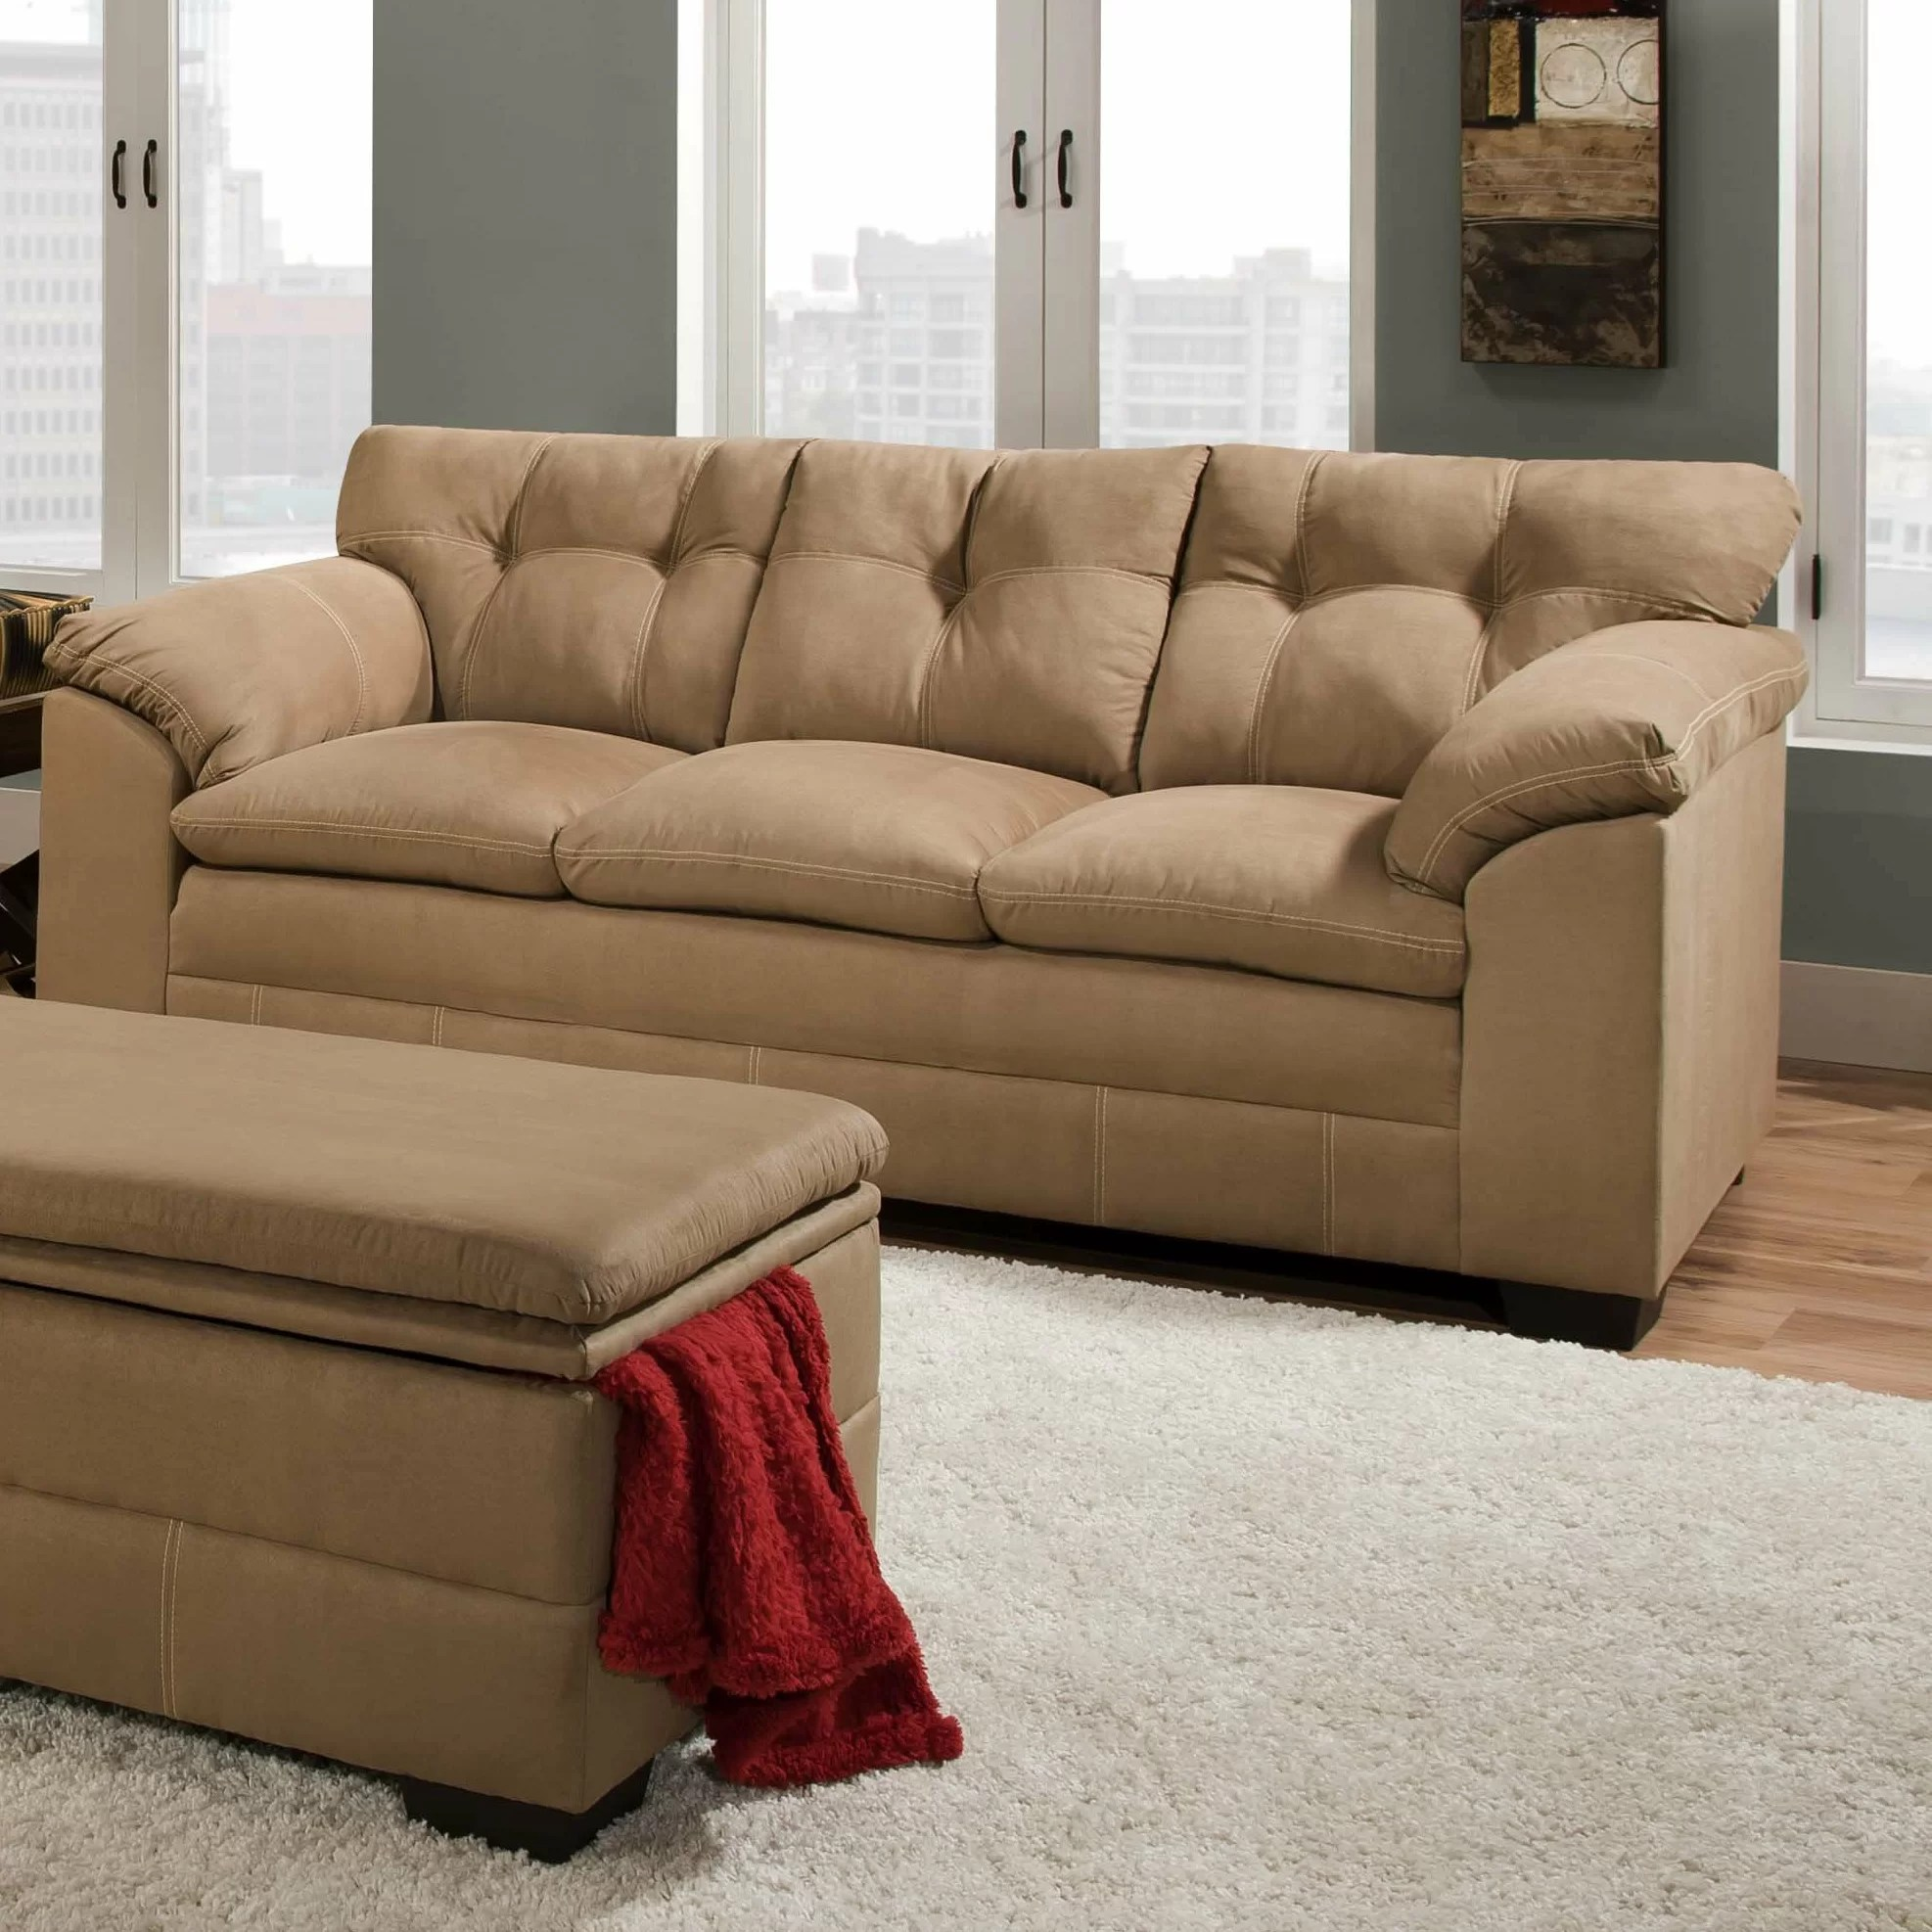 Simmons Velocity Microfiber Sofa Couch With Chaise